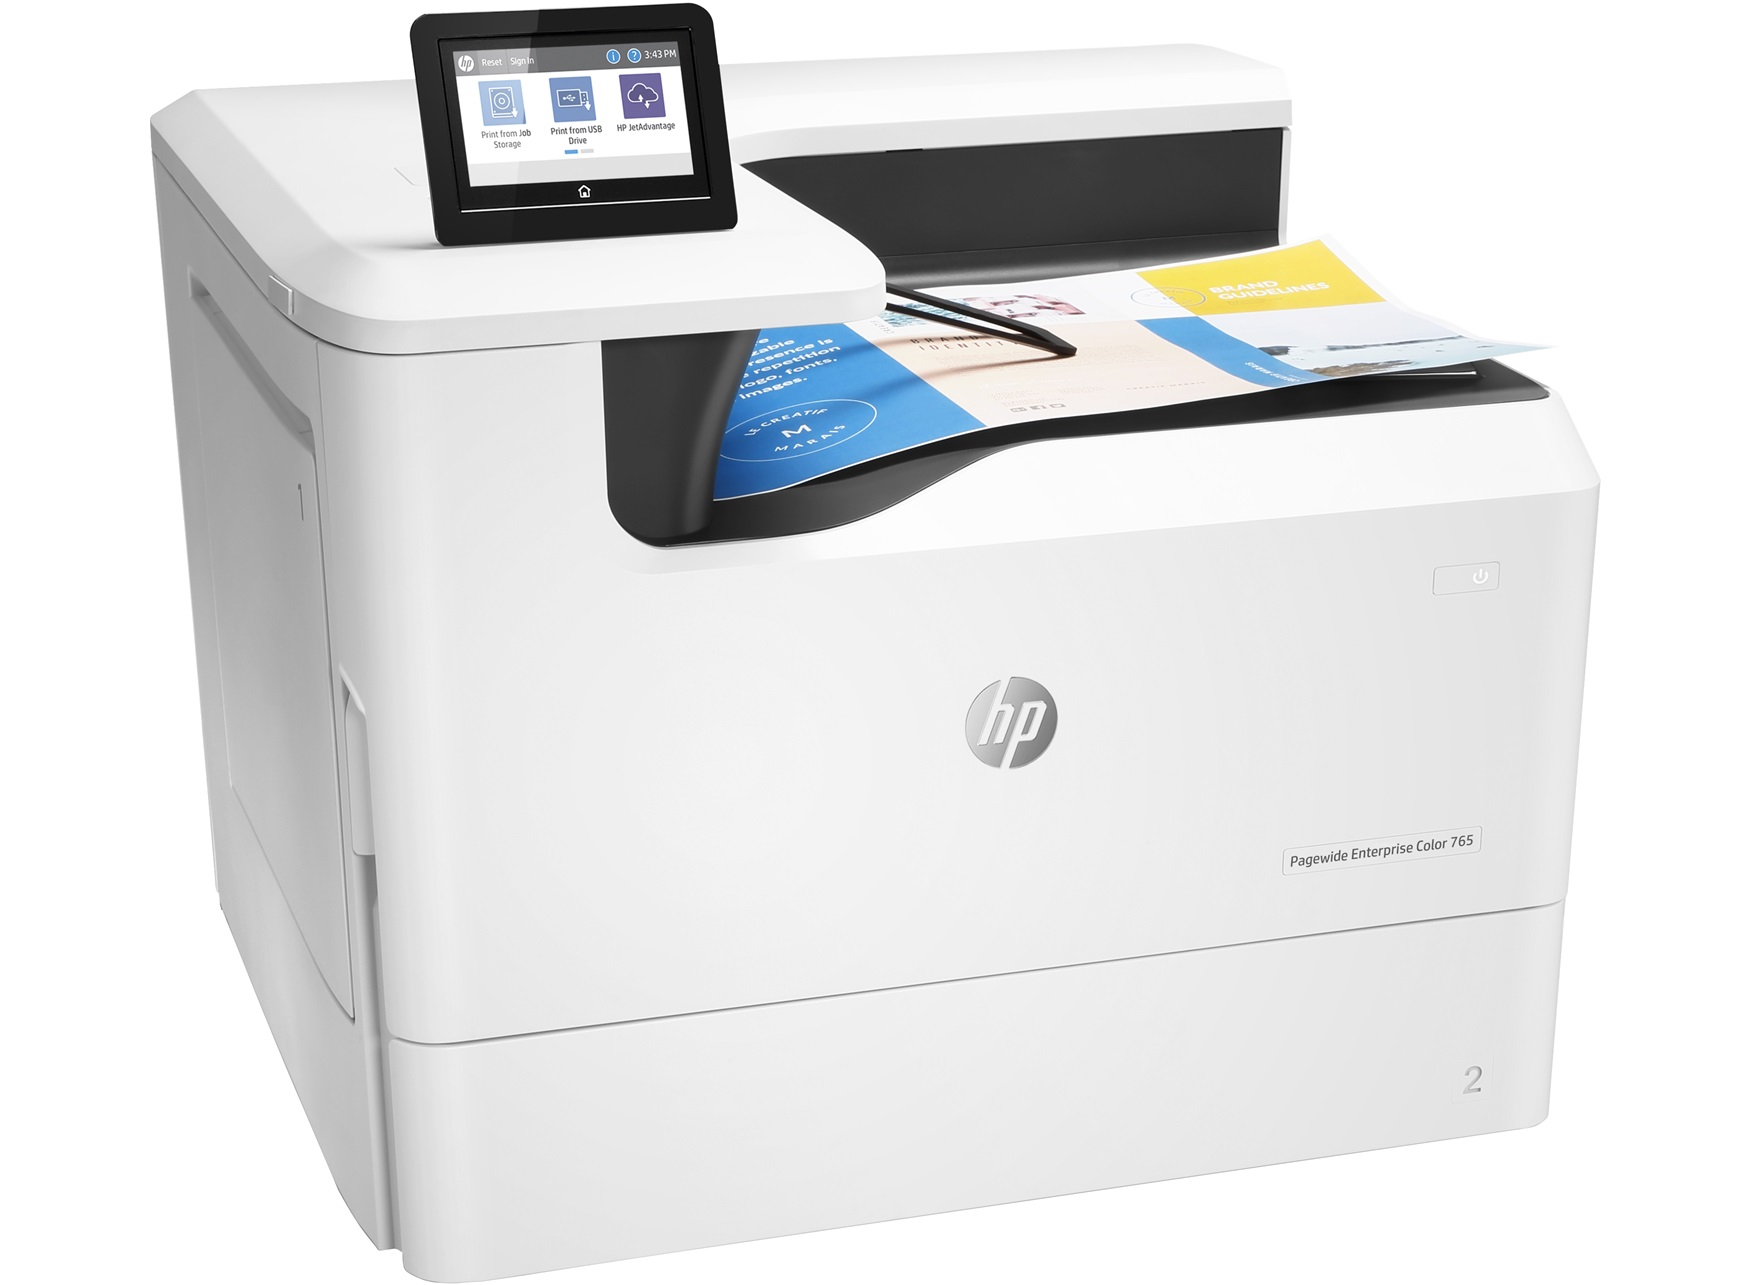 HP PageWide Enterprise Color 765dn Color Laser Printer, New (J7Z04A)